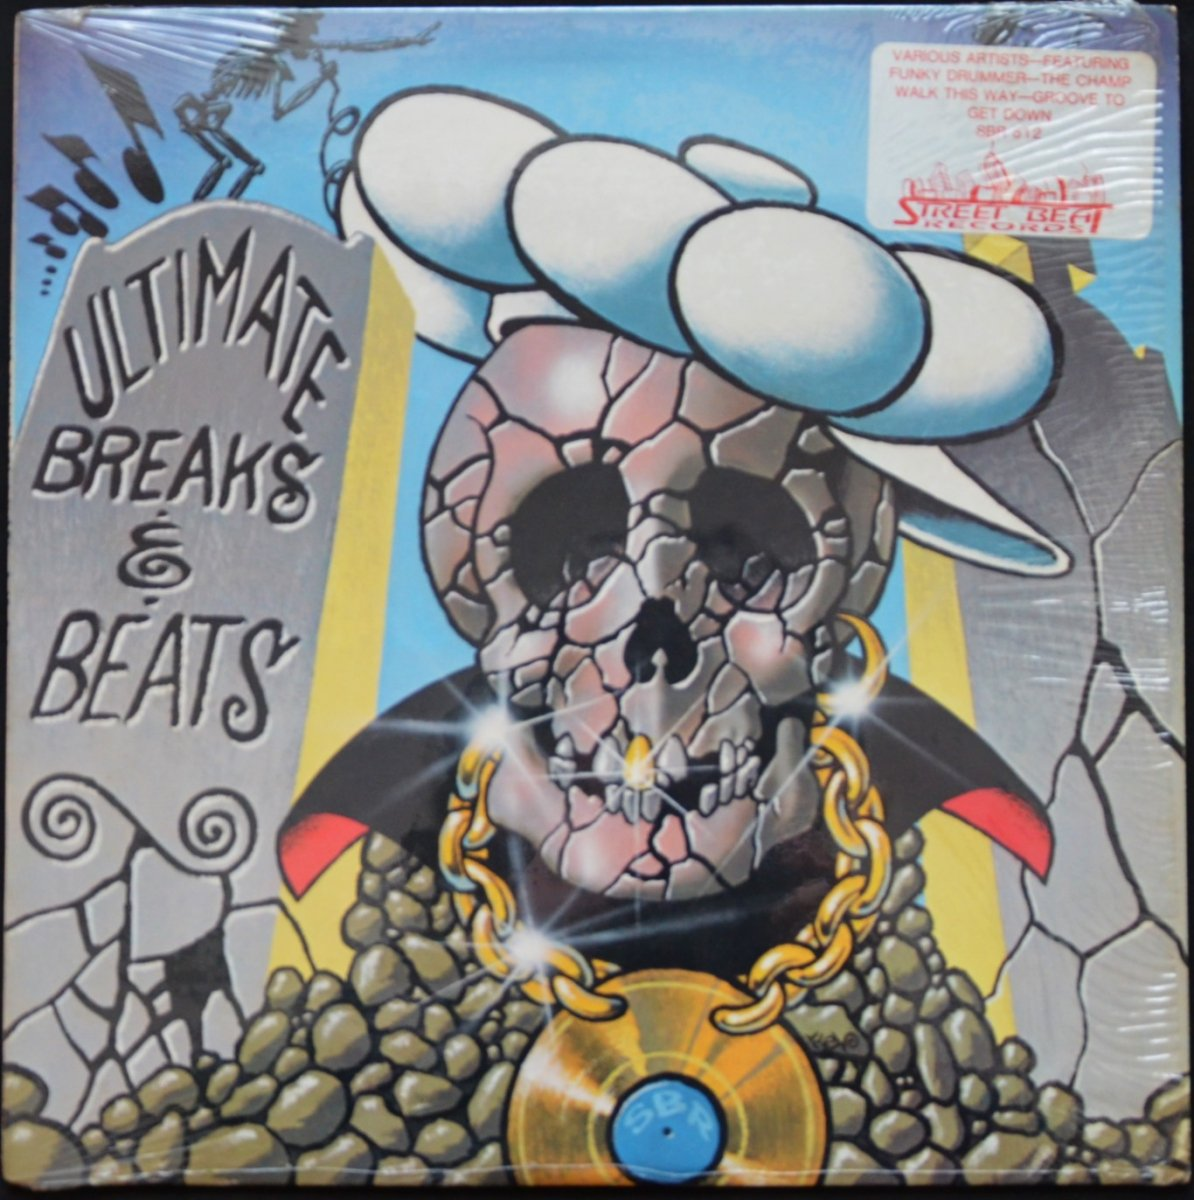 V.A.(JUNIE,JAMES BROWN,THE MOHAWKS...) / ULTIMATE BREAKS & BEATS - 512 (LP)